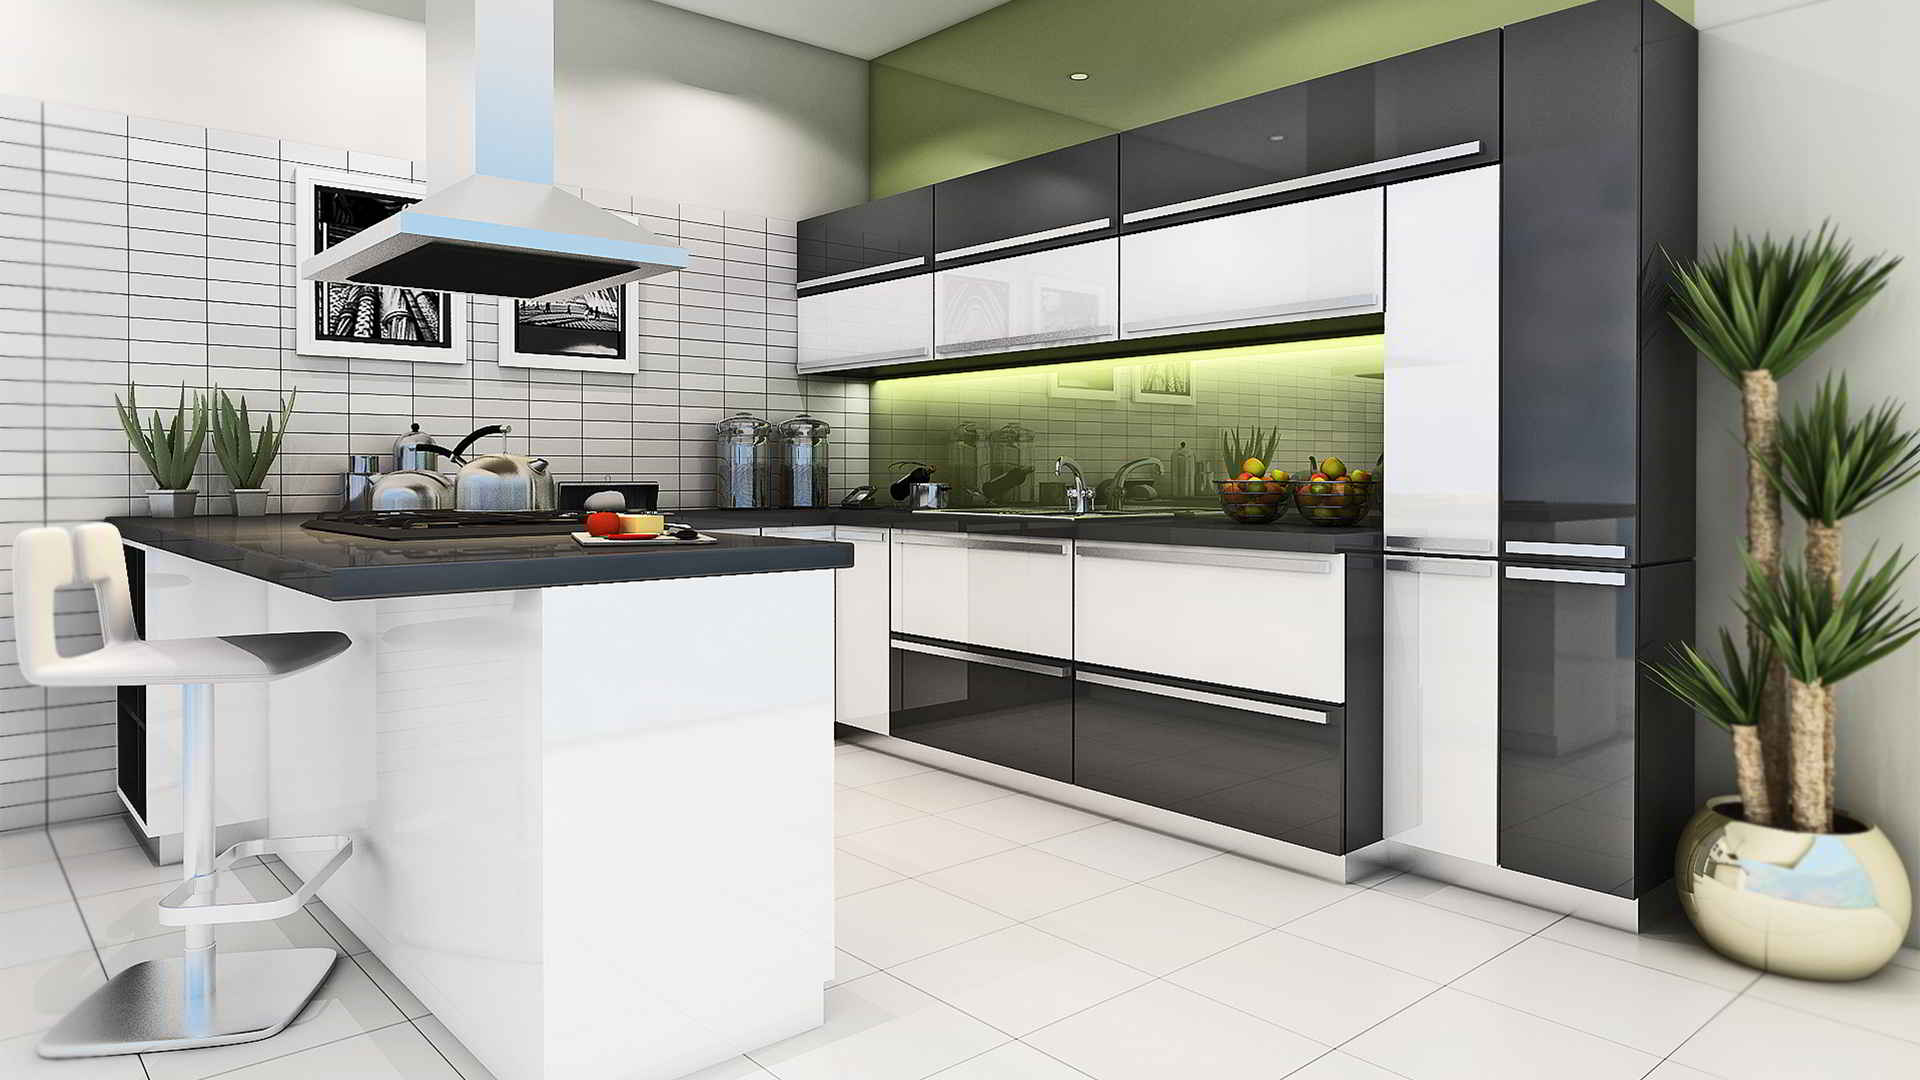 Kitchen Design Hd Wallpapers 25+ latest design ideas of modular kitchen pictures , images